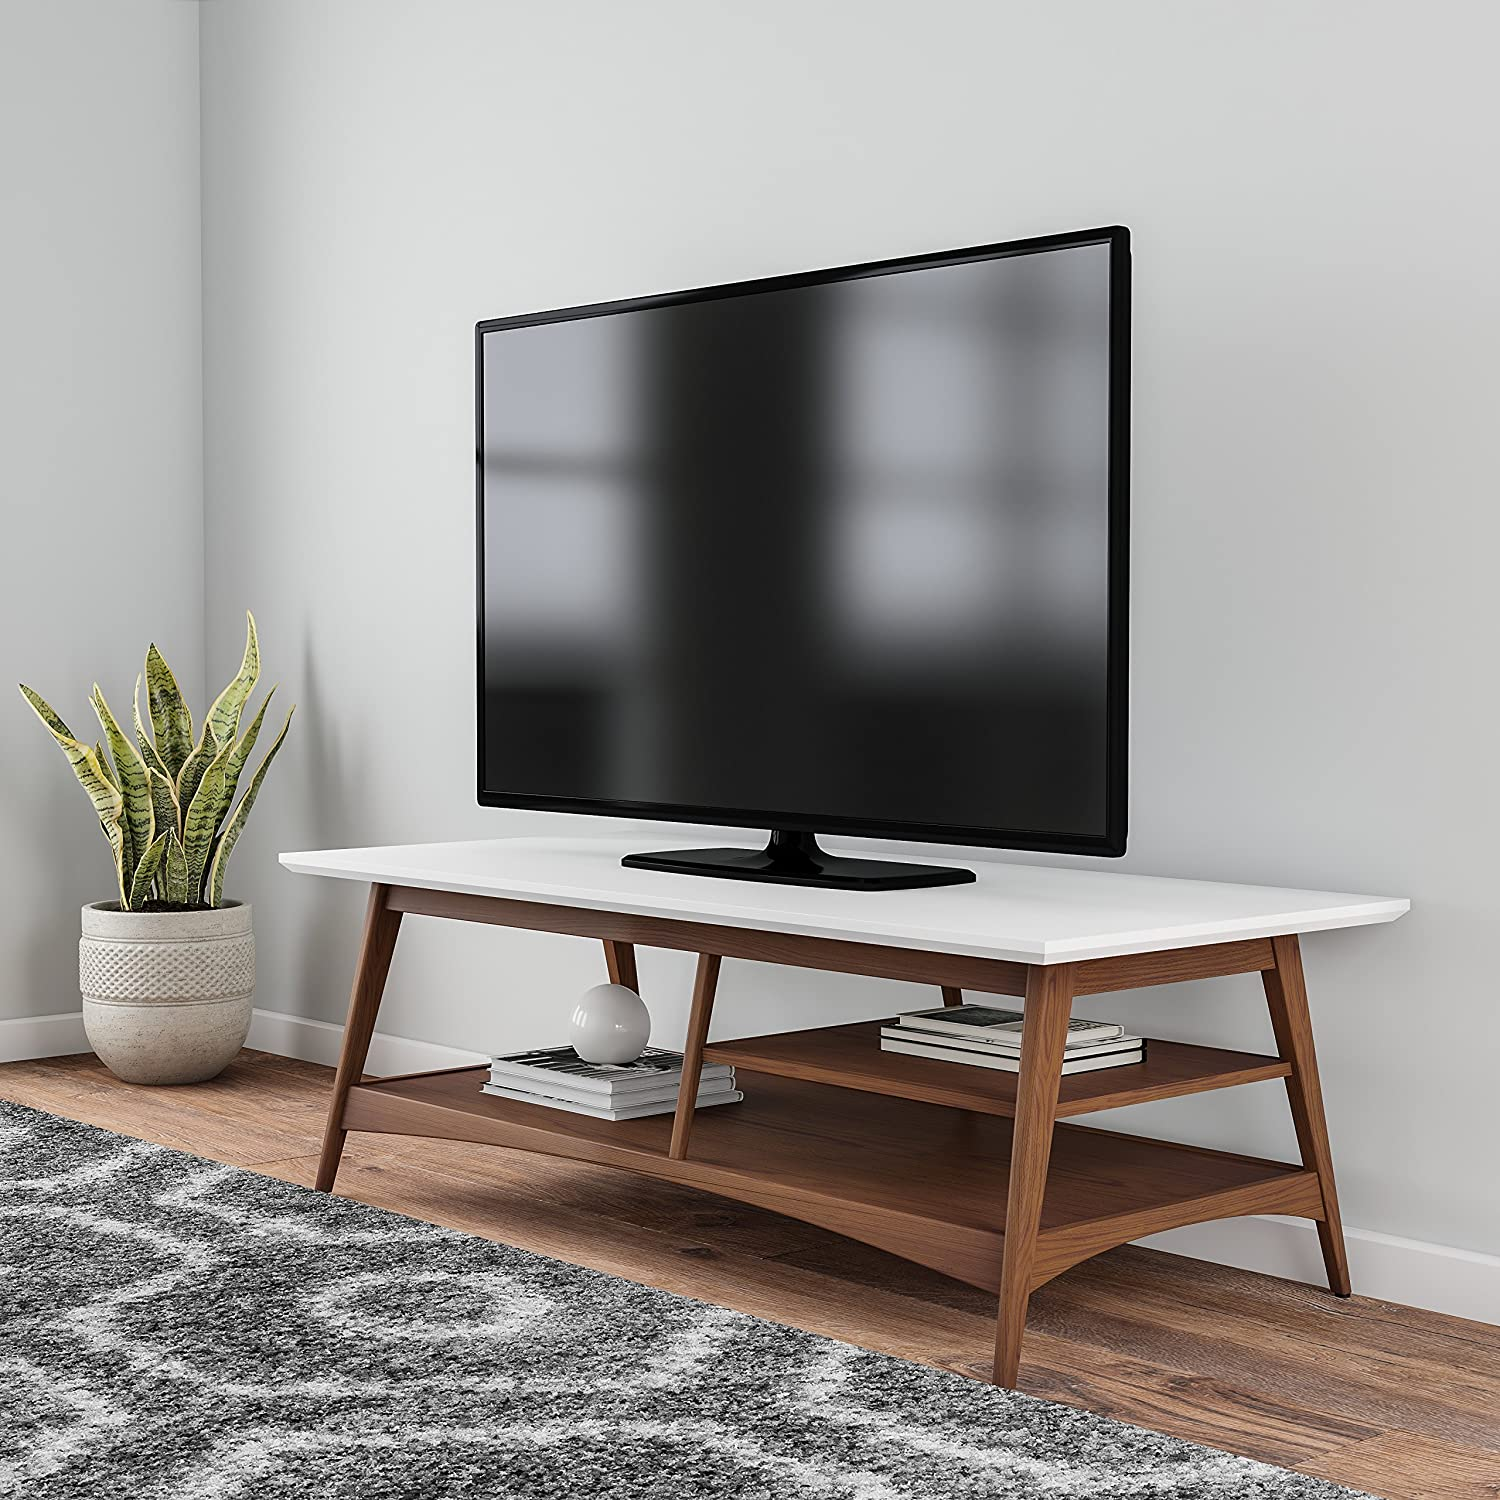 Mod Haus Living Mid Century Retro Wood Two Tone 54 Inch Media Cabinet Storage With Shelves And Tapered Legs   Includes Pen by Mod Haus Living